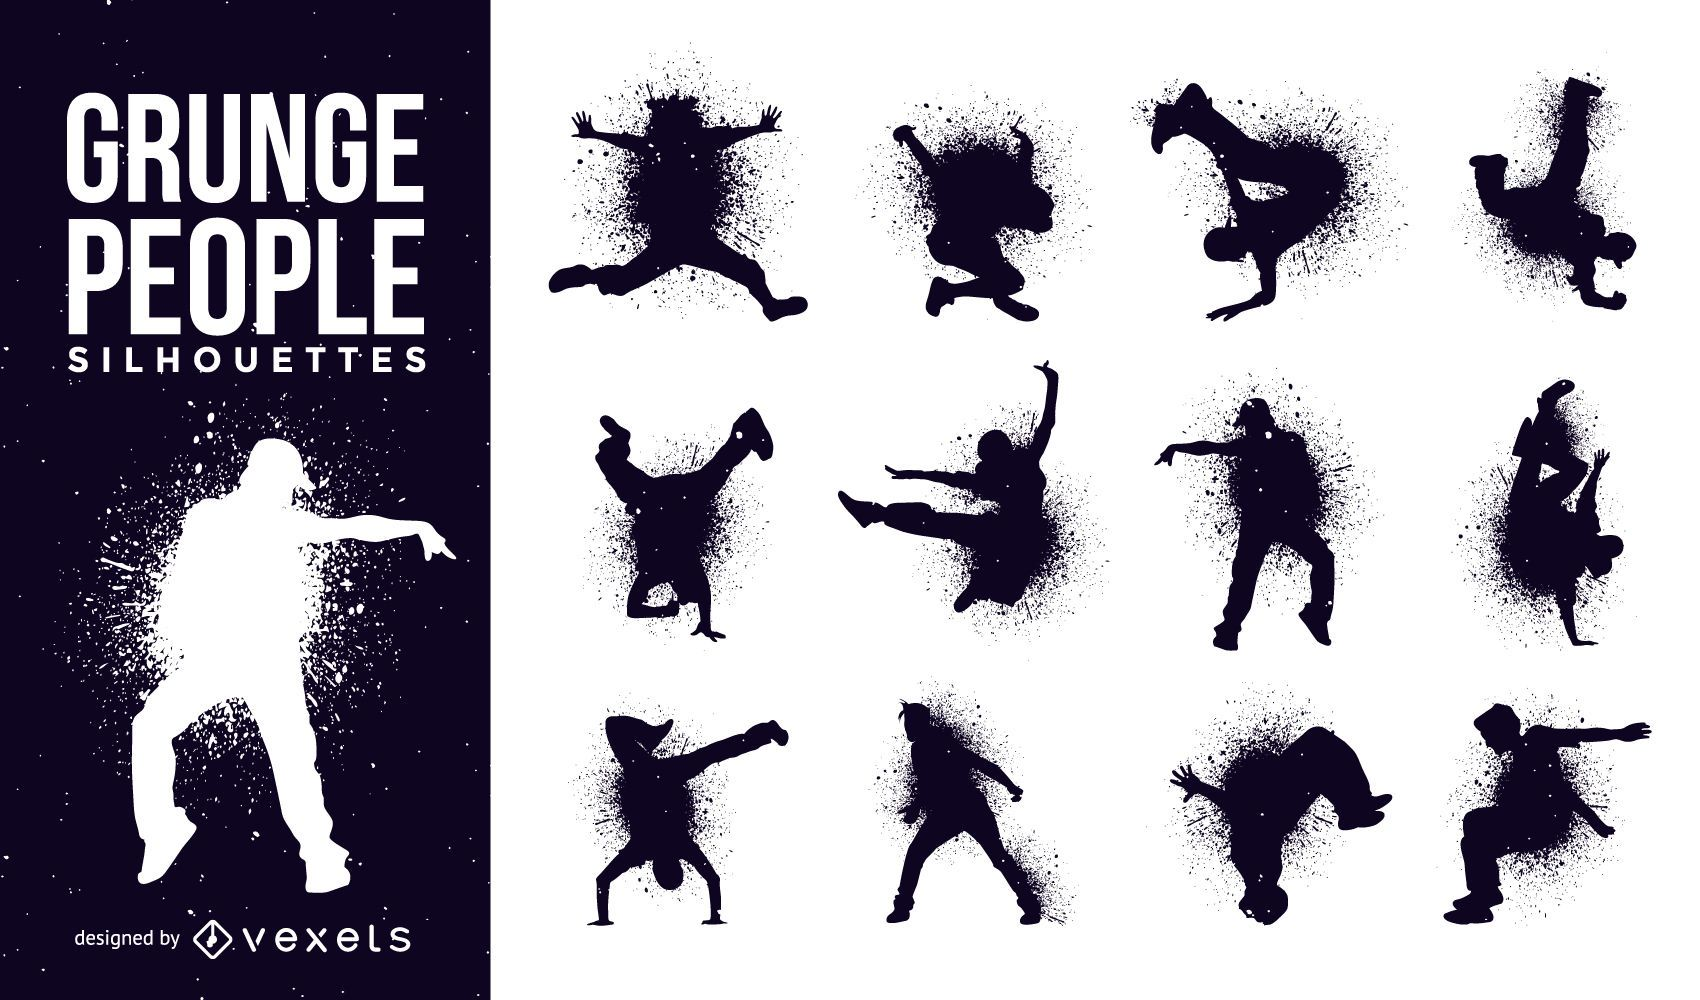 People silhouettes in grunge style